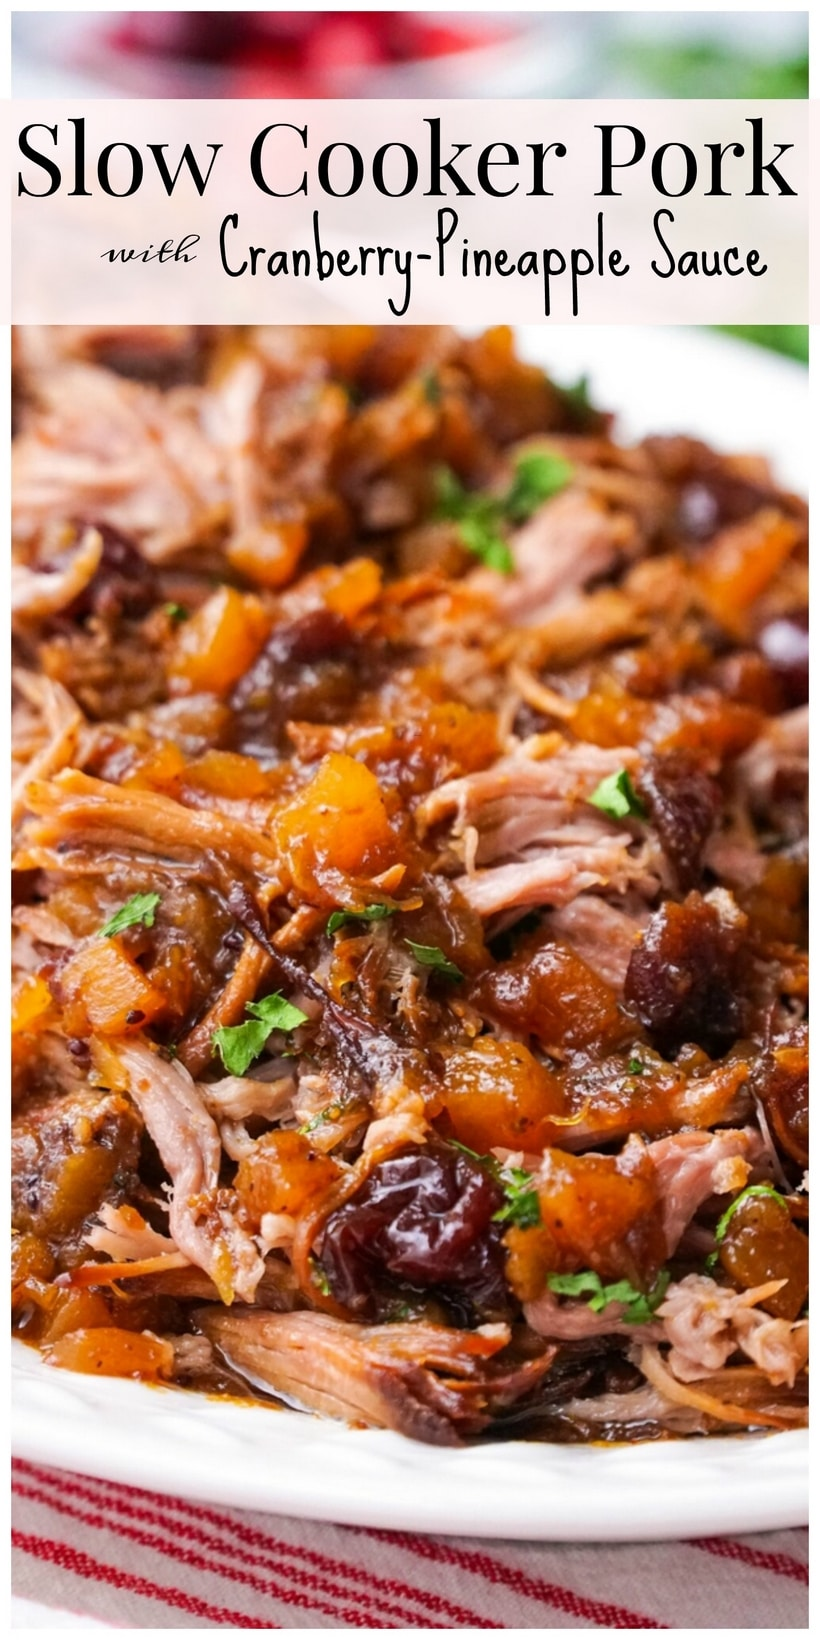 Take the work out of making dinner with this savory and slightly sweet Slow Cooker Pork with Cranberry-Pineapple Sauce. Only five minutes of prep time are needed for this delicious recipe. #slowcooker #slowcookermeal #pork #slowcookerpork #cranberry #pineapple #easyslowcookerrecipe #easyslowcookerrecipes #easydinners #whatsfordinner #dinnerideas #whatshouldimakefordinner #porkroast #pulledpork #cozydinner #whatshouldieat via @cmpollak1